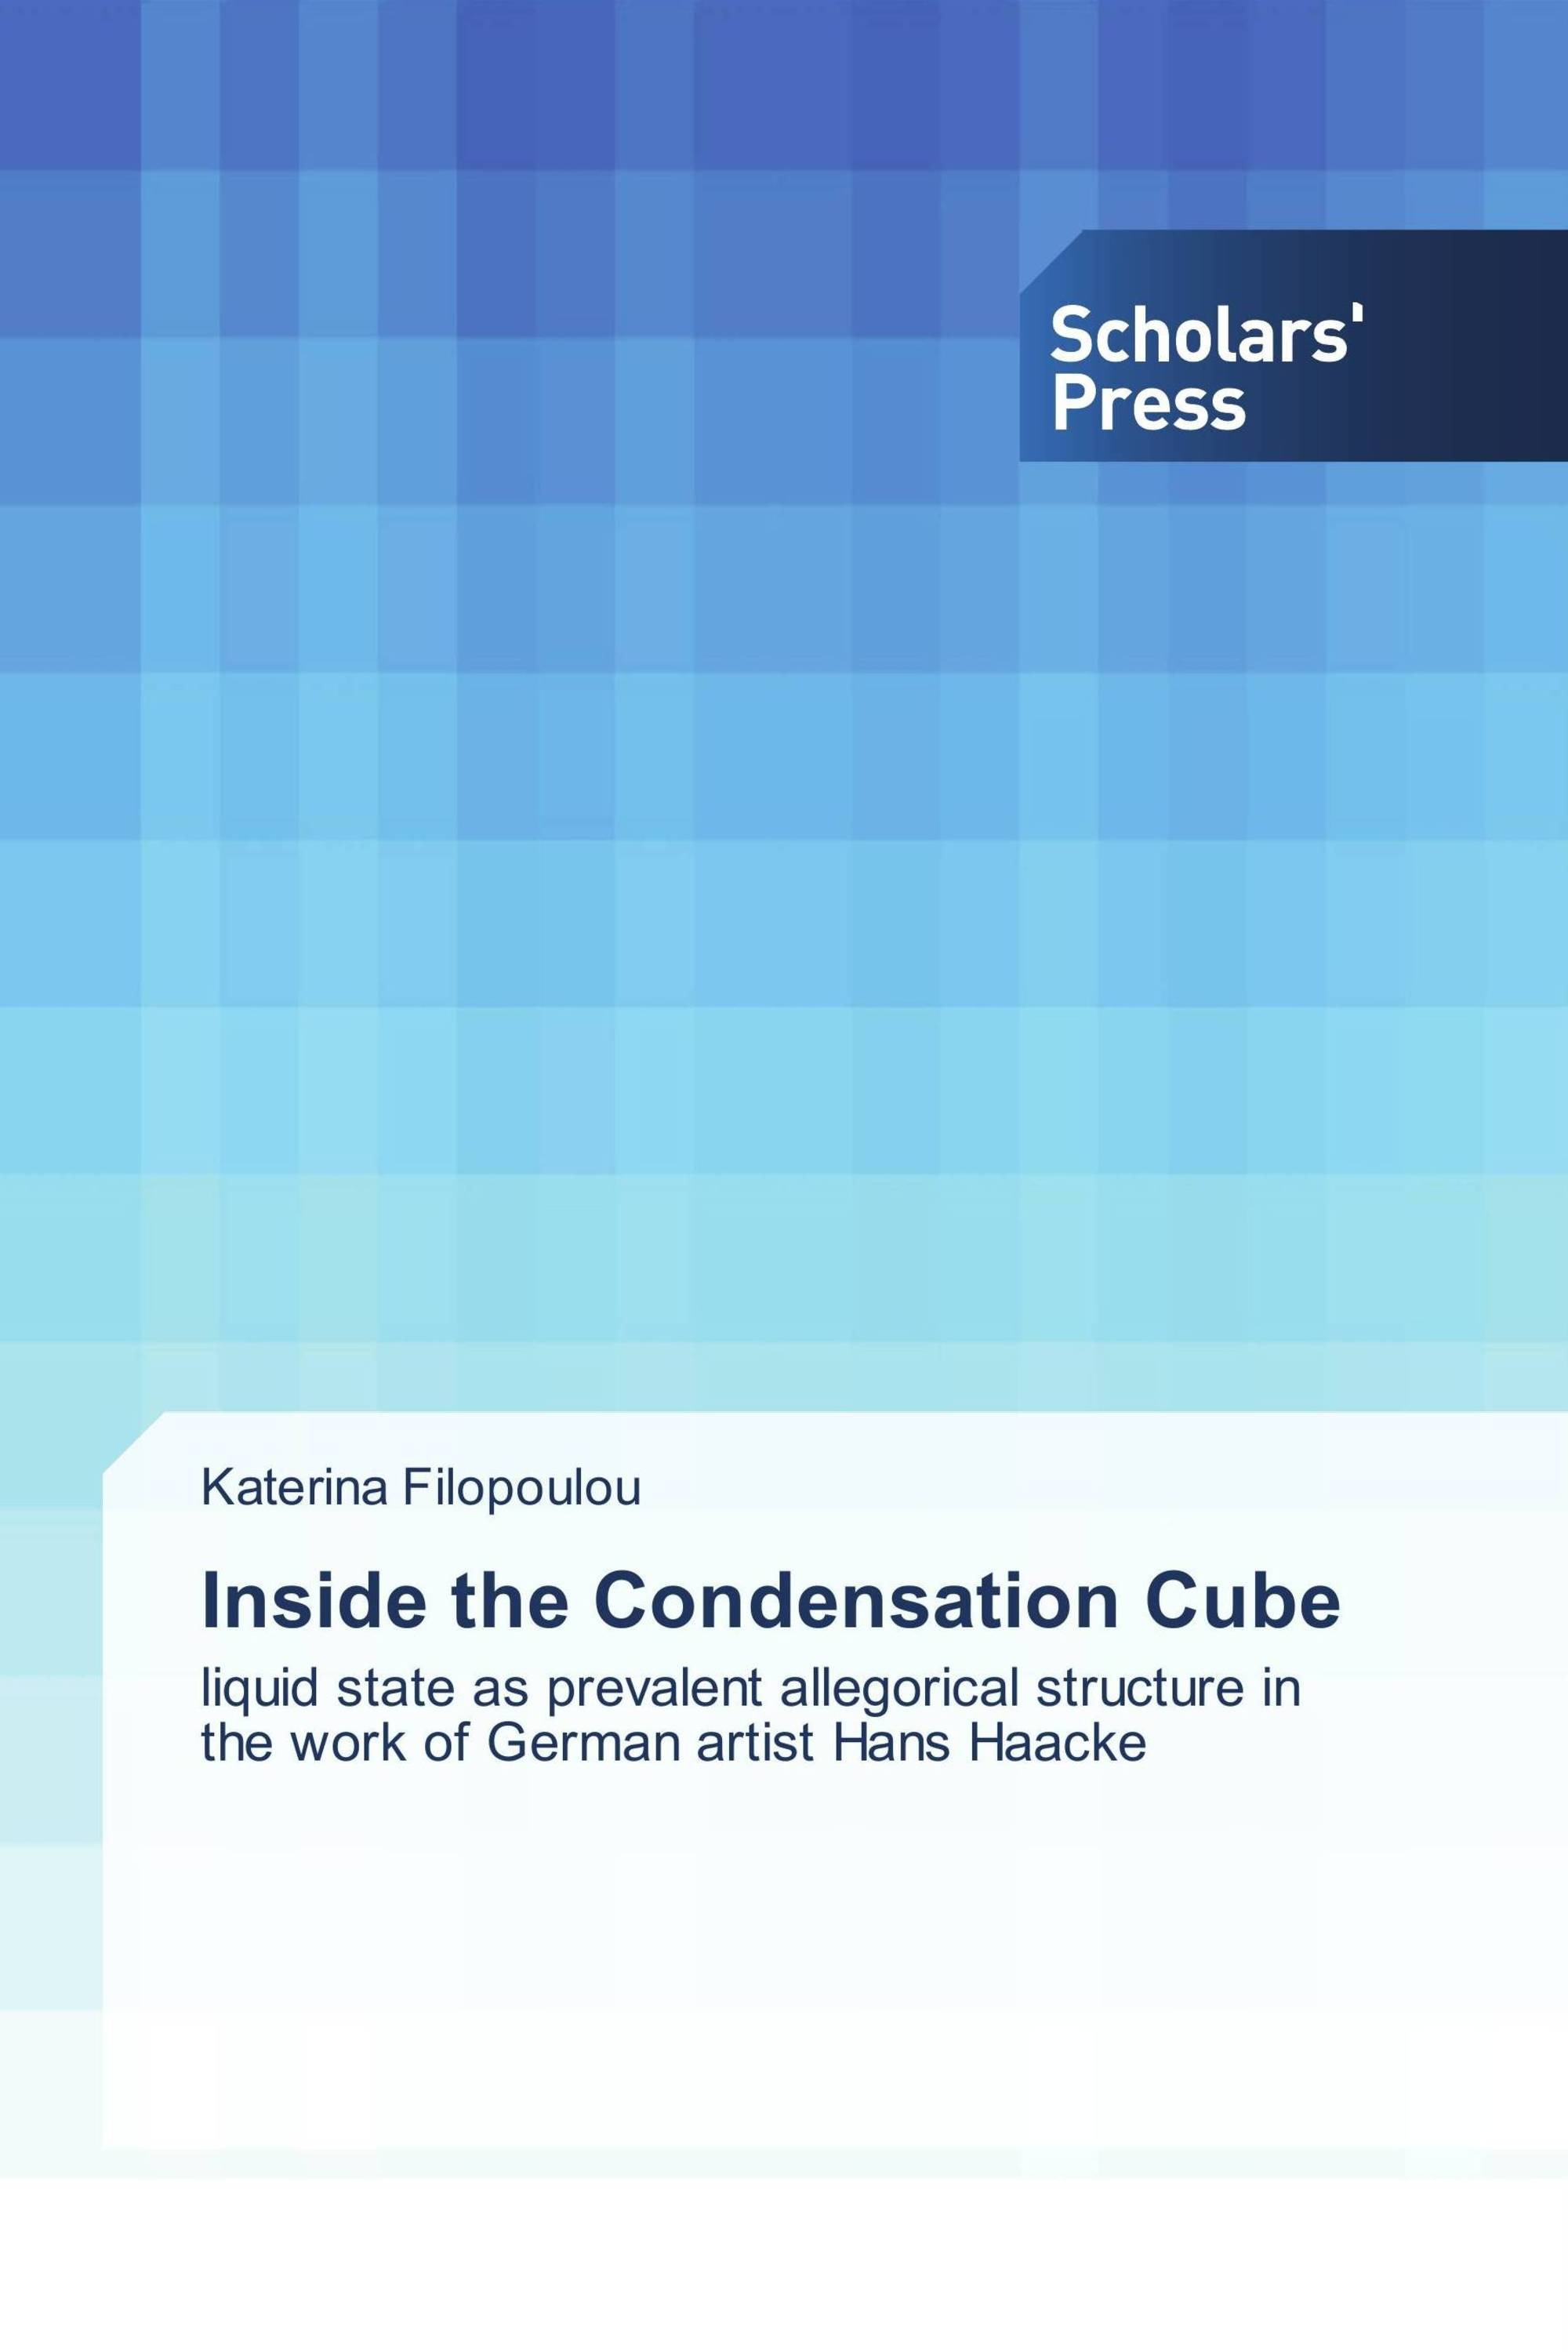 inside the condensation cube liquid state as prevalent allegorical structure in the work of german artist hans haacke